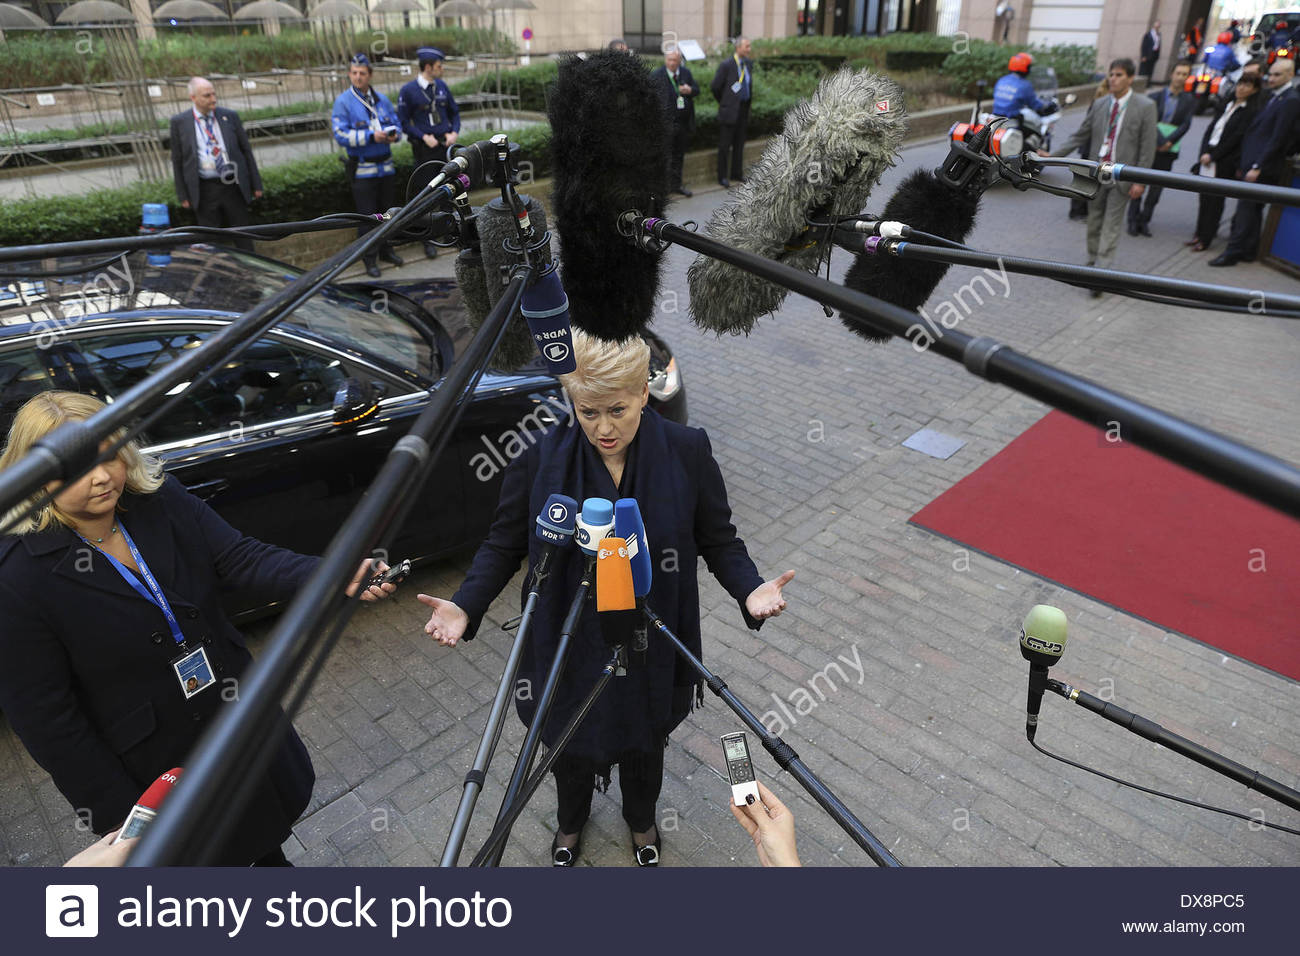 Brussels, BXL, Belgium. 20th Mar, 2014. The President of the Republic of Lithuania Dalia GRYBAUSKAITE arrives to the summit of Heads of State in the European Council HQ in Brussels, Belgium, Thursday 20, 2014. The situation in Ukraine would be 'most prominent'' on the summit agenda for the leaders of the member states of the European Union and the EU's 28 would discuss their response during dinner today. The agenda for Friday focuses on the EU's policies on climate and energy, including plans for completing the international energy market and for developing interconnections. At the end of - Stock Image